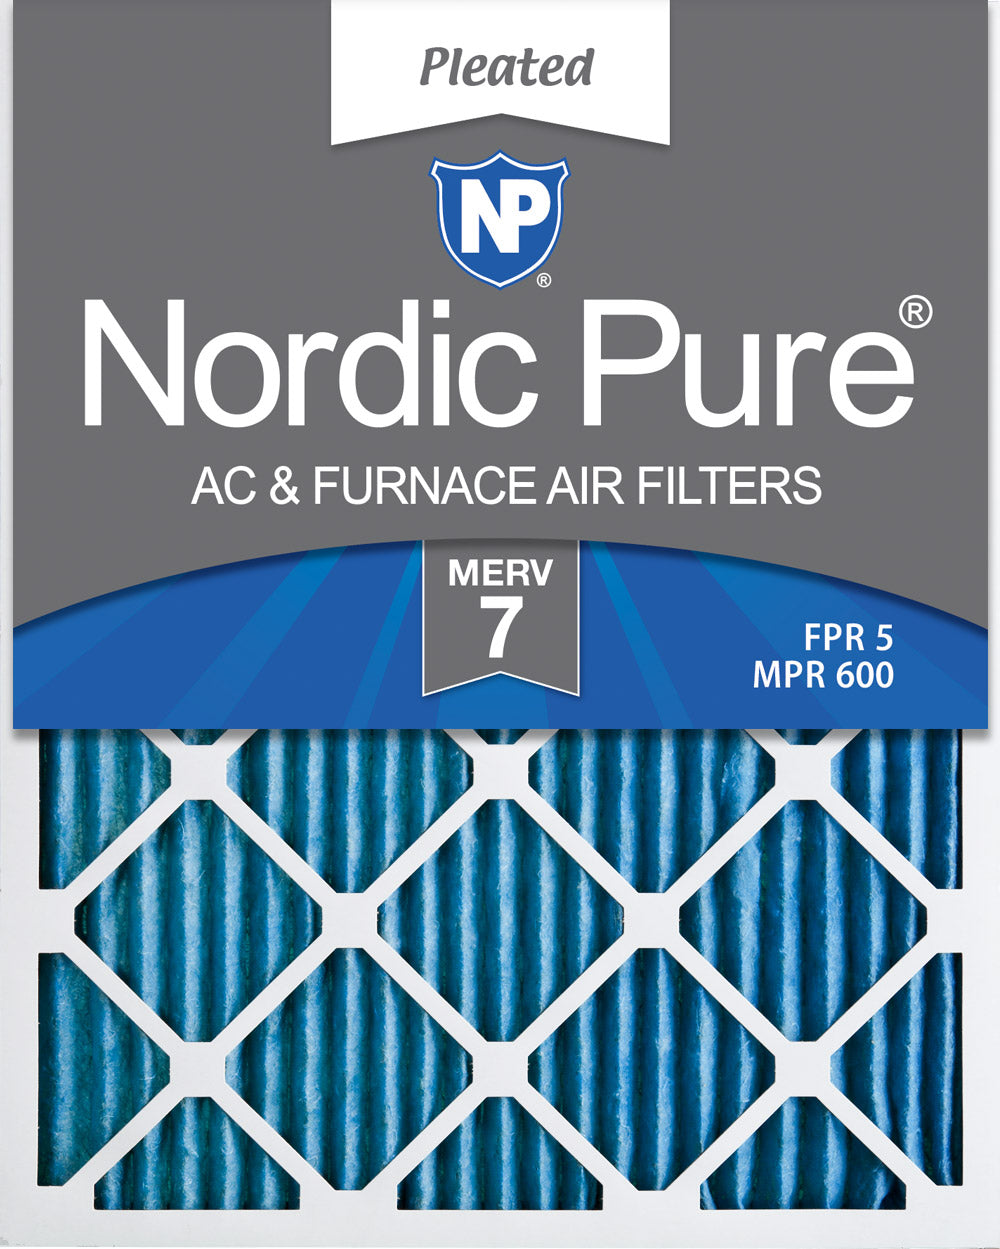 Nordic Pure 25x32x1 Exact MERV 11 Pleated AC Furnace Air Filters 1 Pack